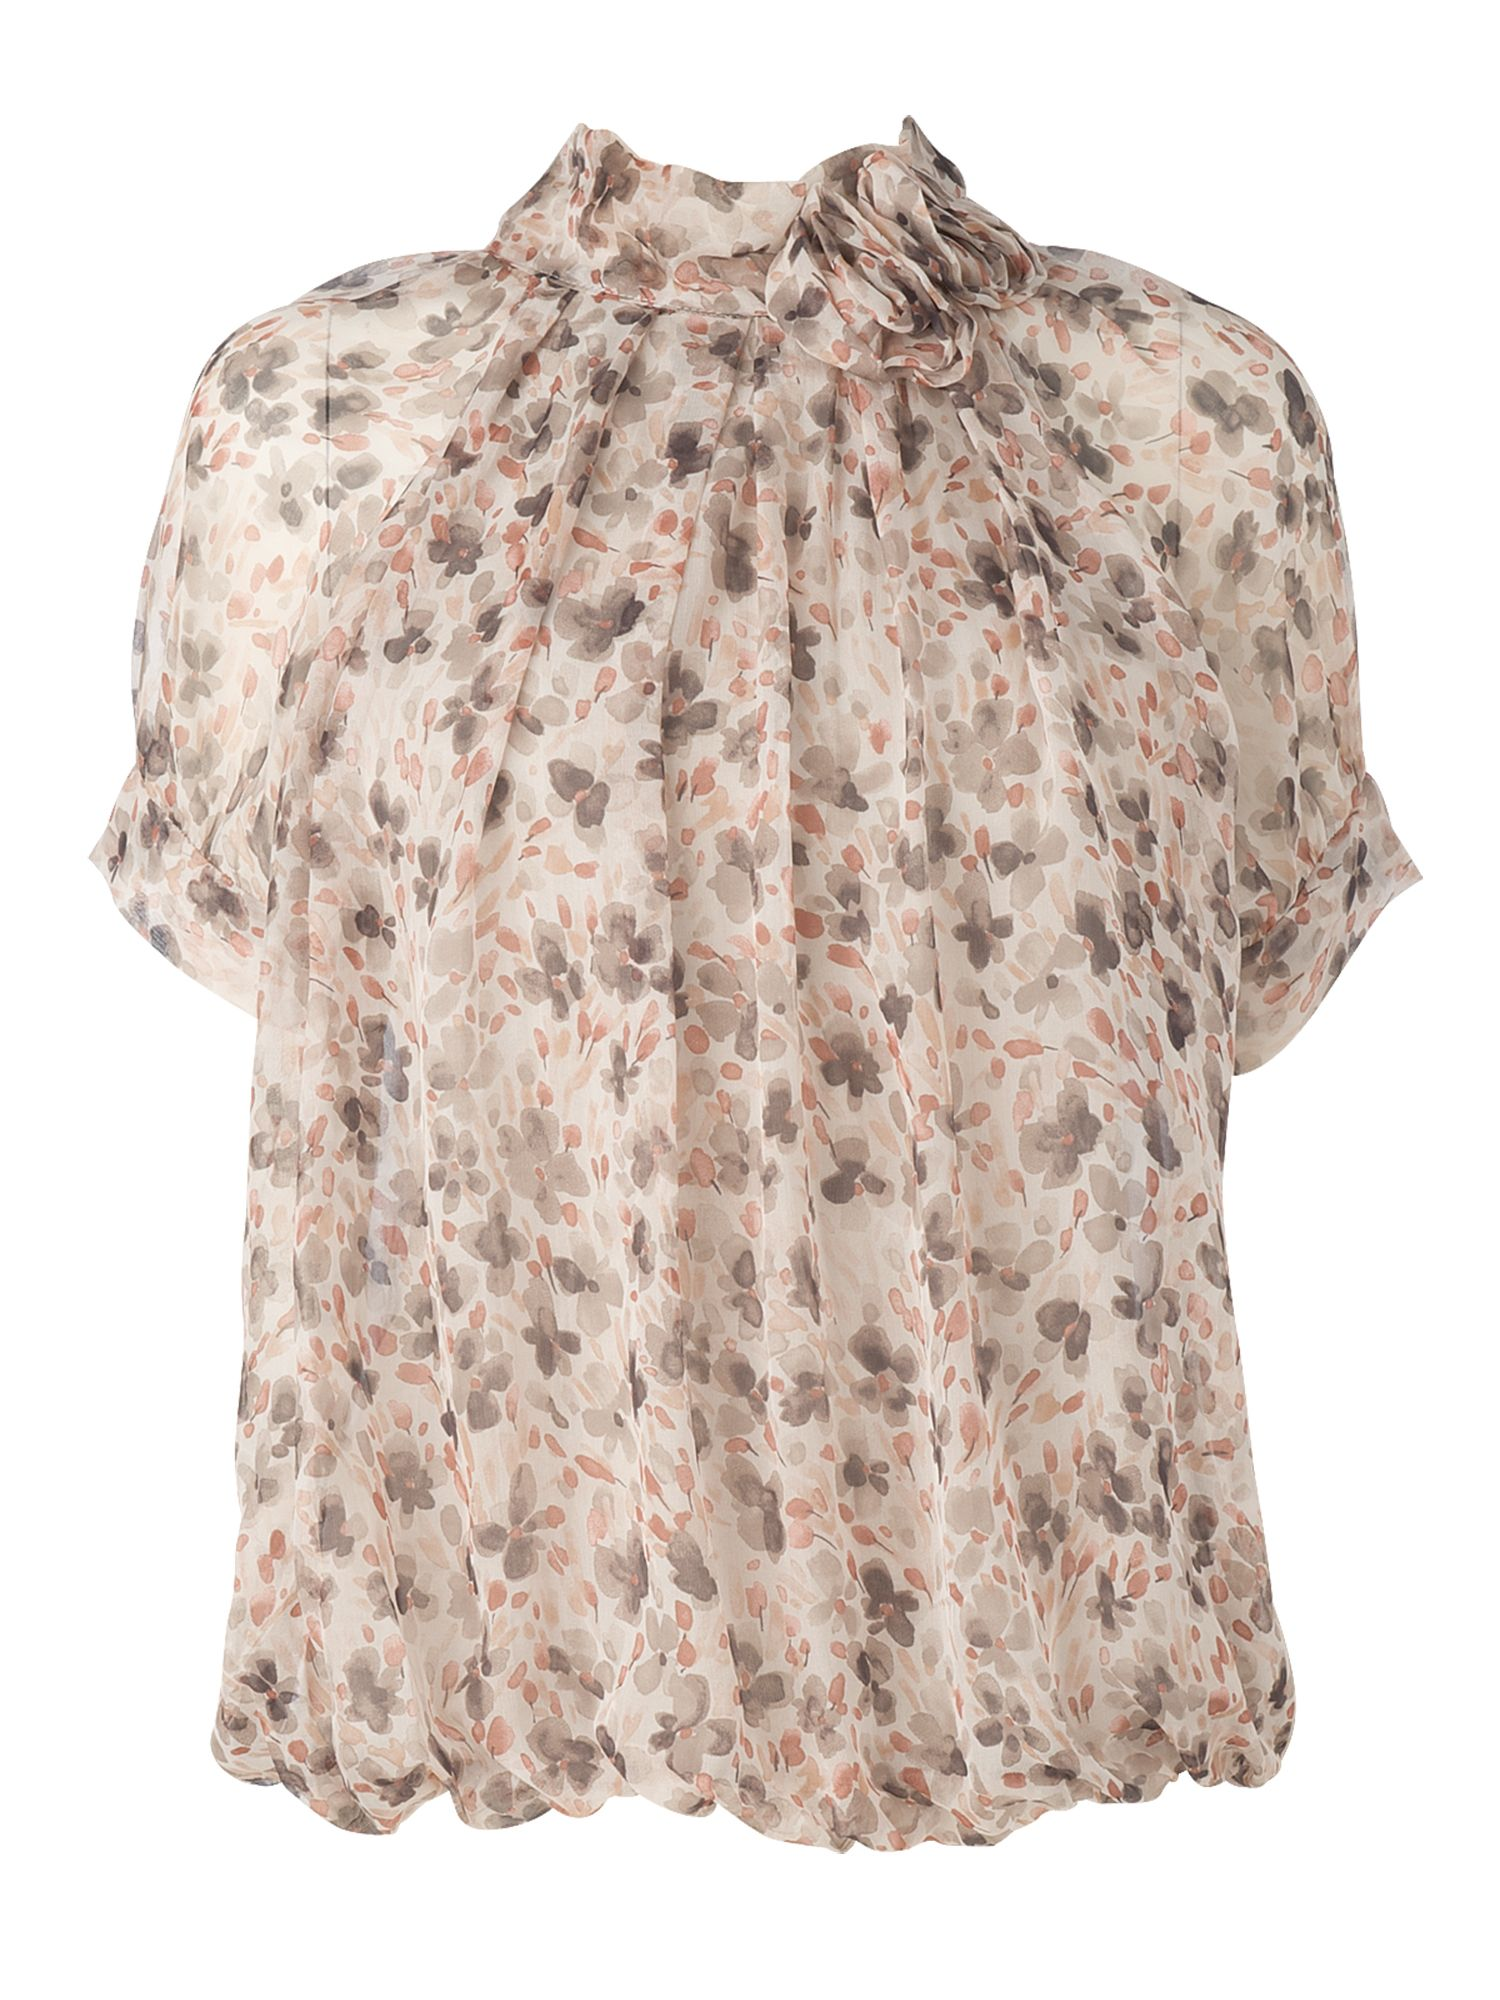 Phase Eight Dawn silk flower blouse - Multi-Coloured XS,XS product image